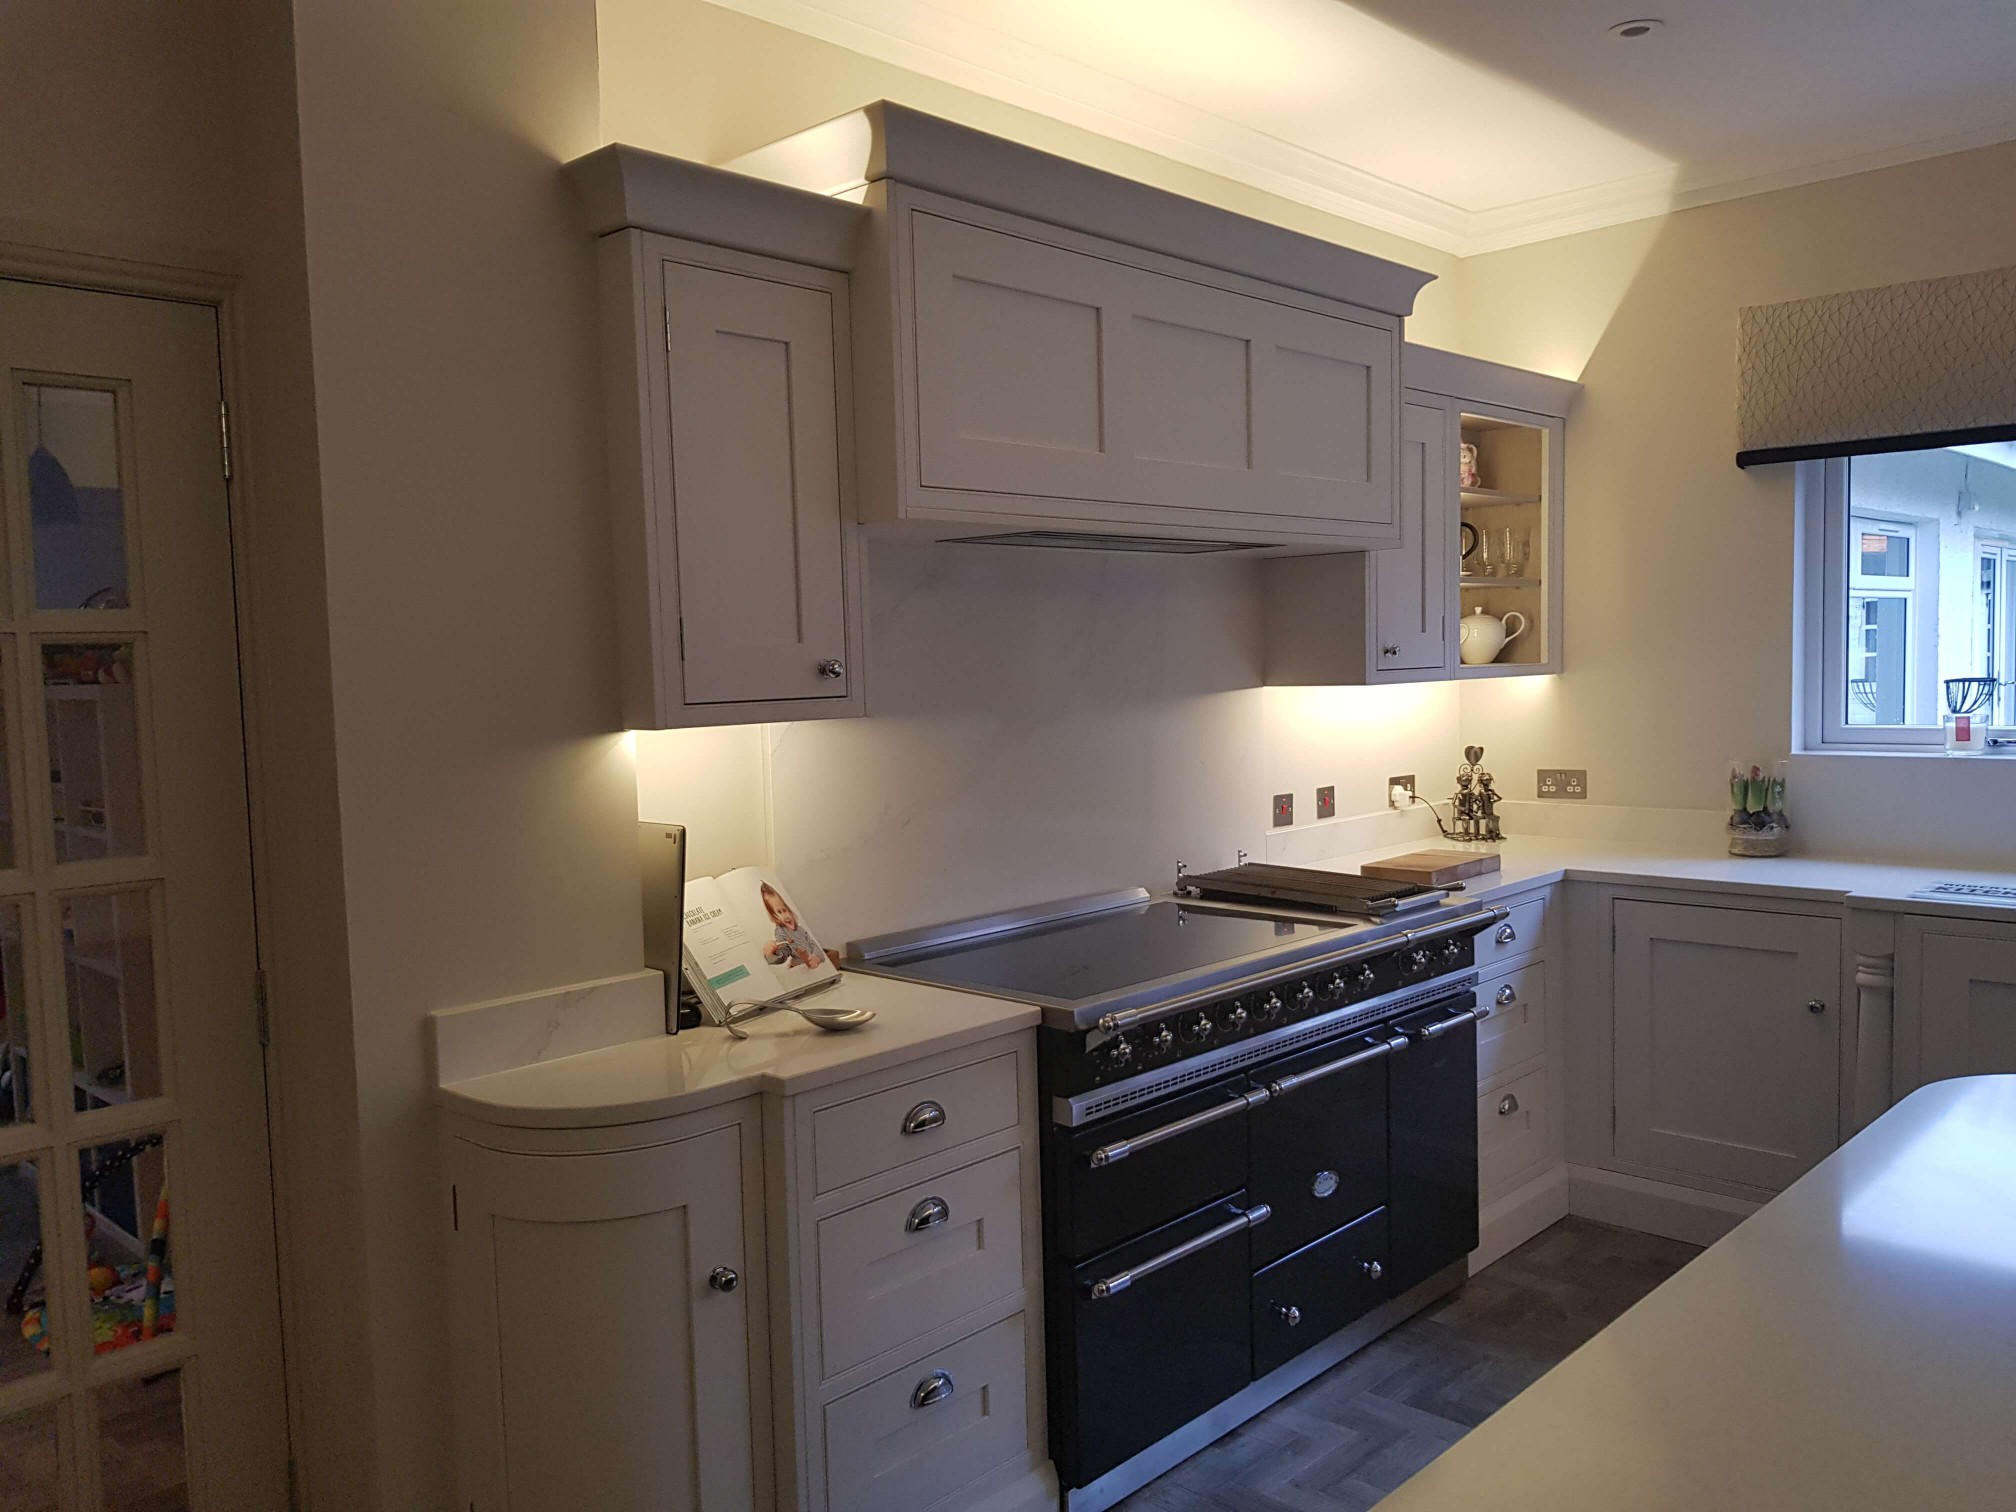 Bespoke Inframe Kitchen Range and hood